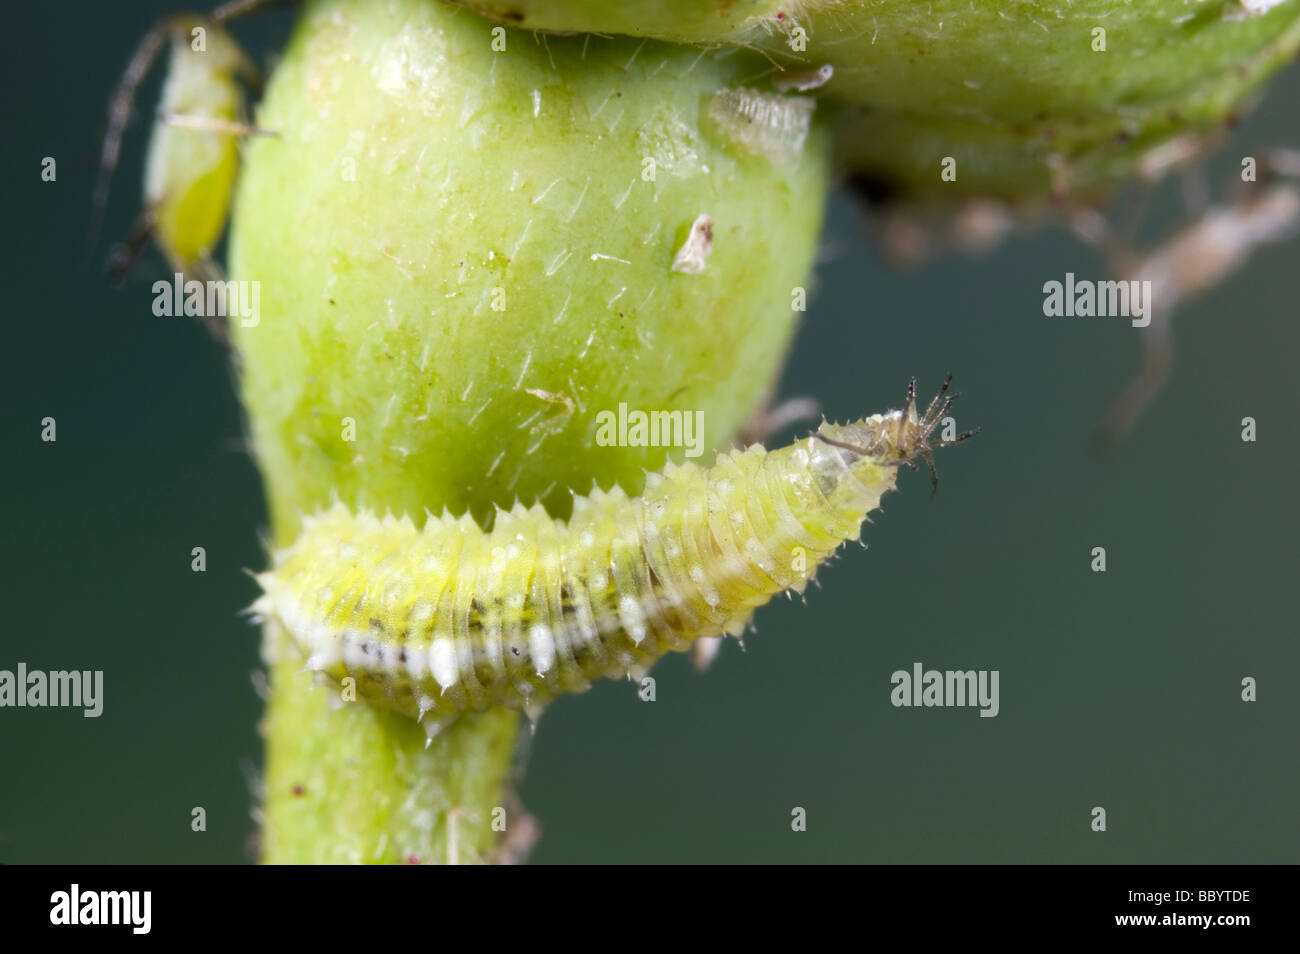 Hover fly larva eating an aphid - Stock Image